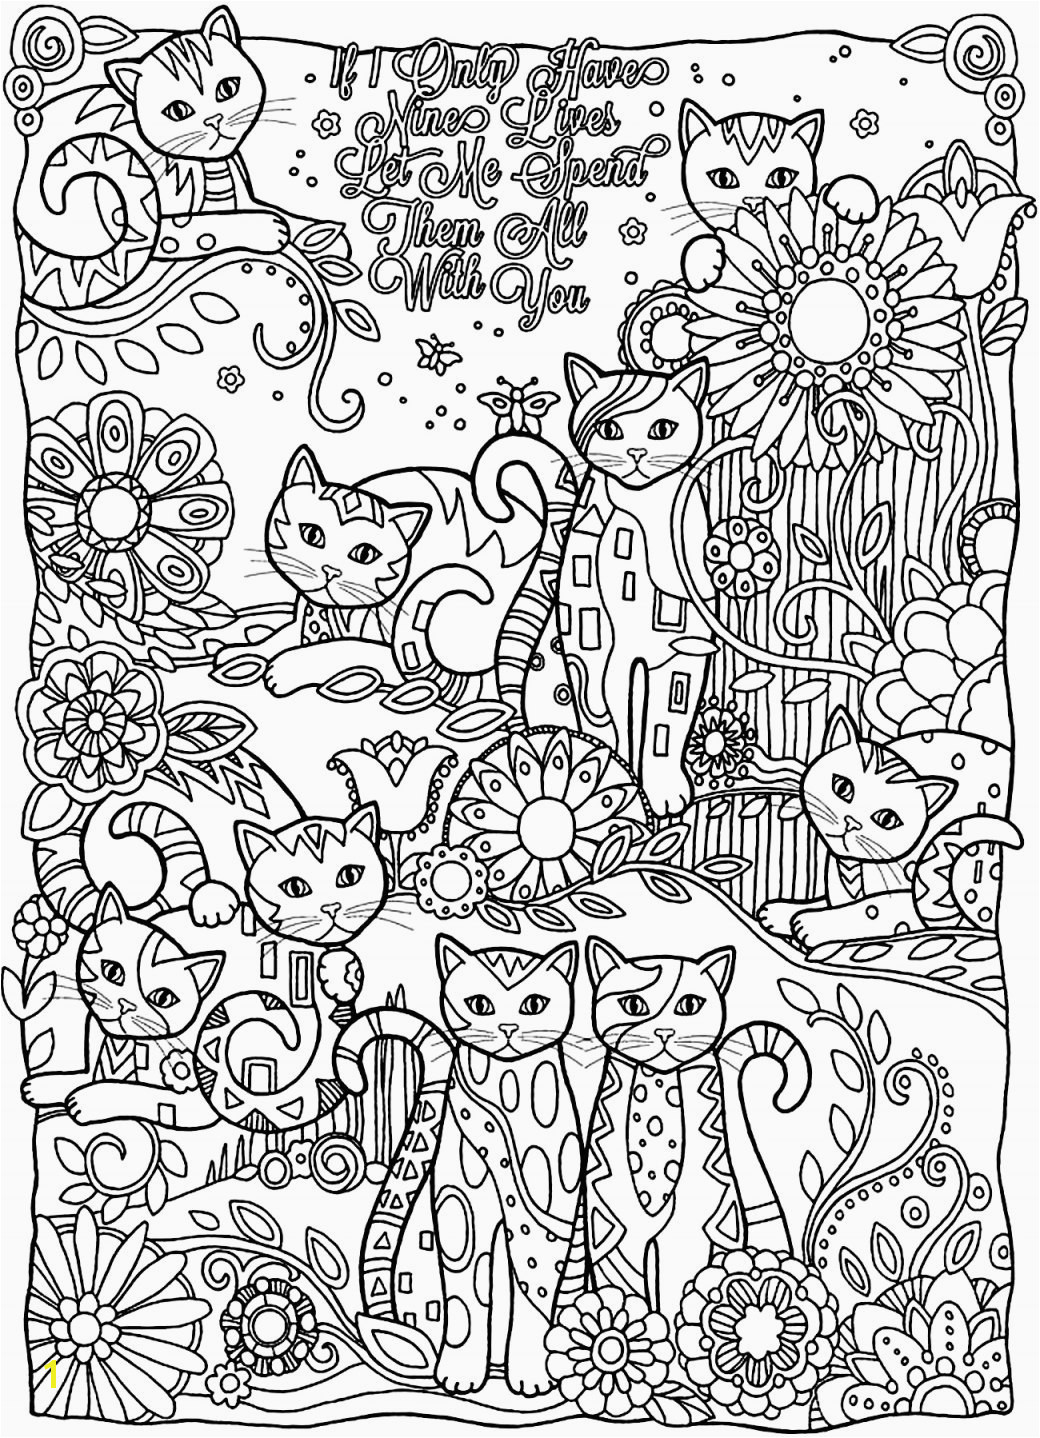 Adult Coloring Pages Abstract New Cute Printable Coloring Pages New Printable Od Dog Coloring Pages Ruva